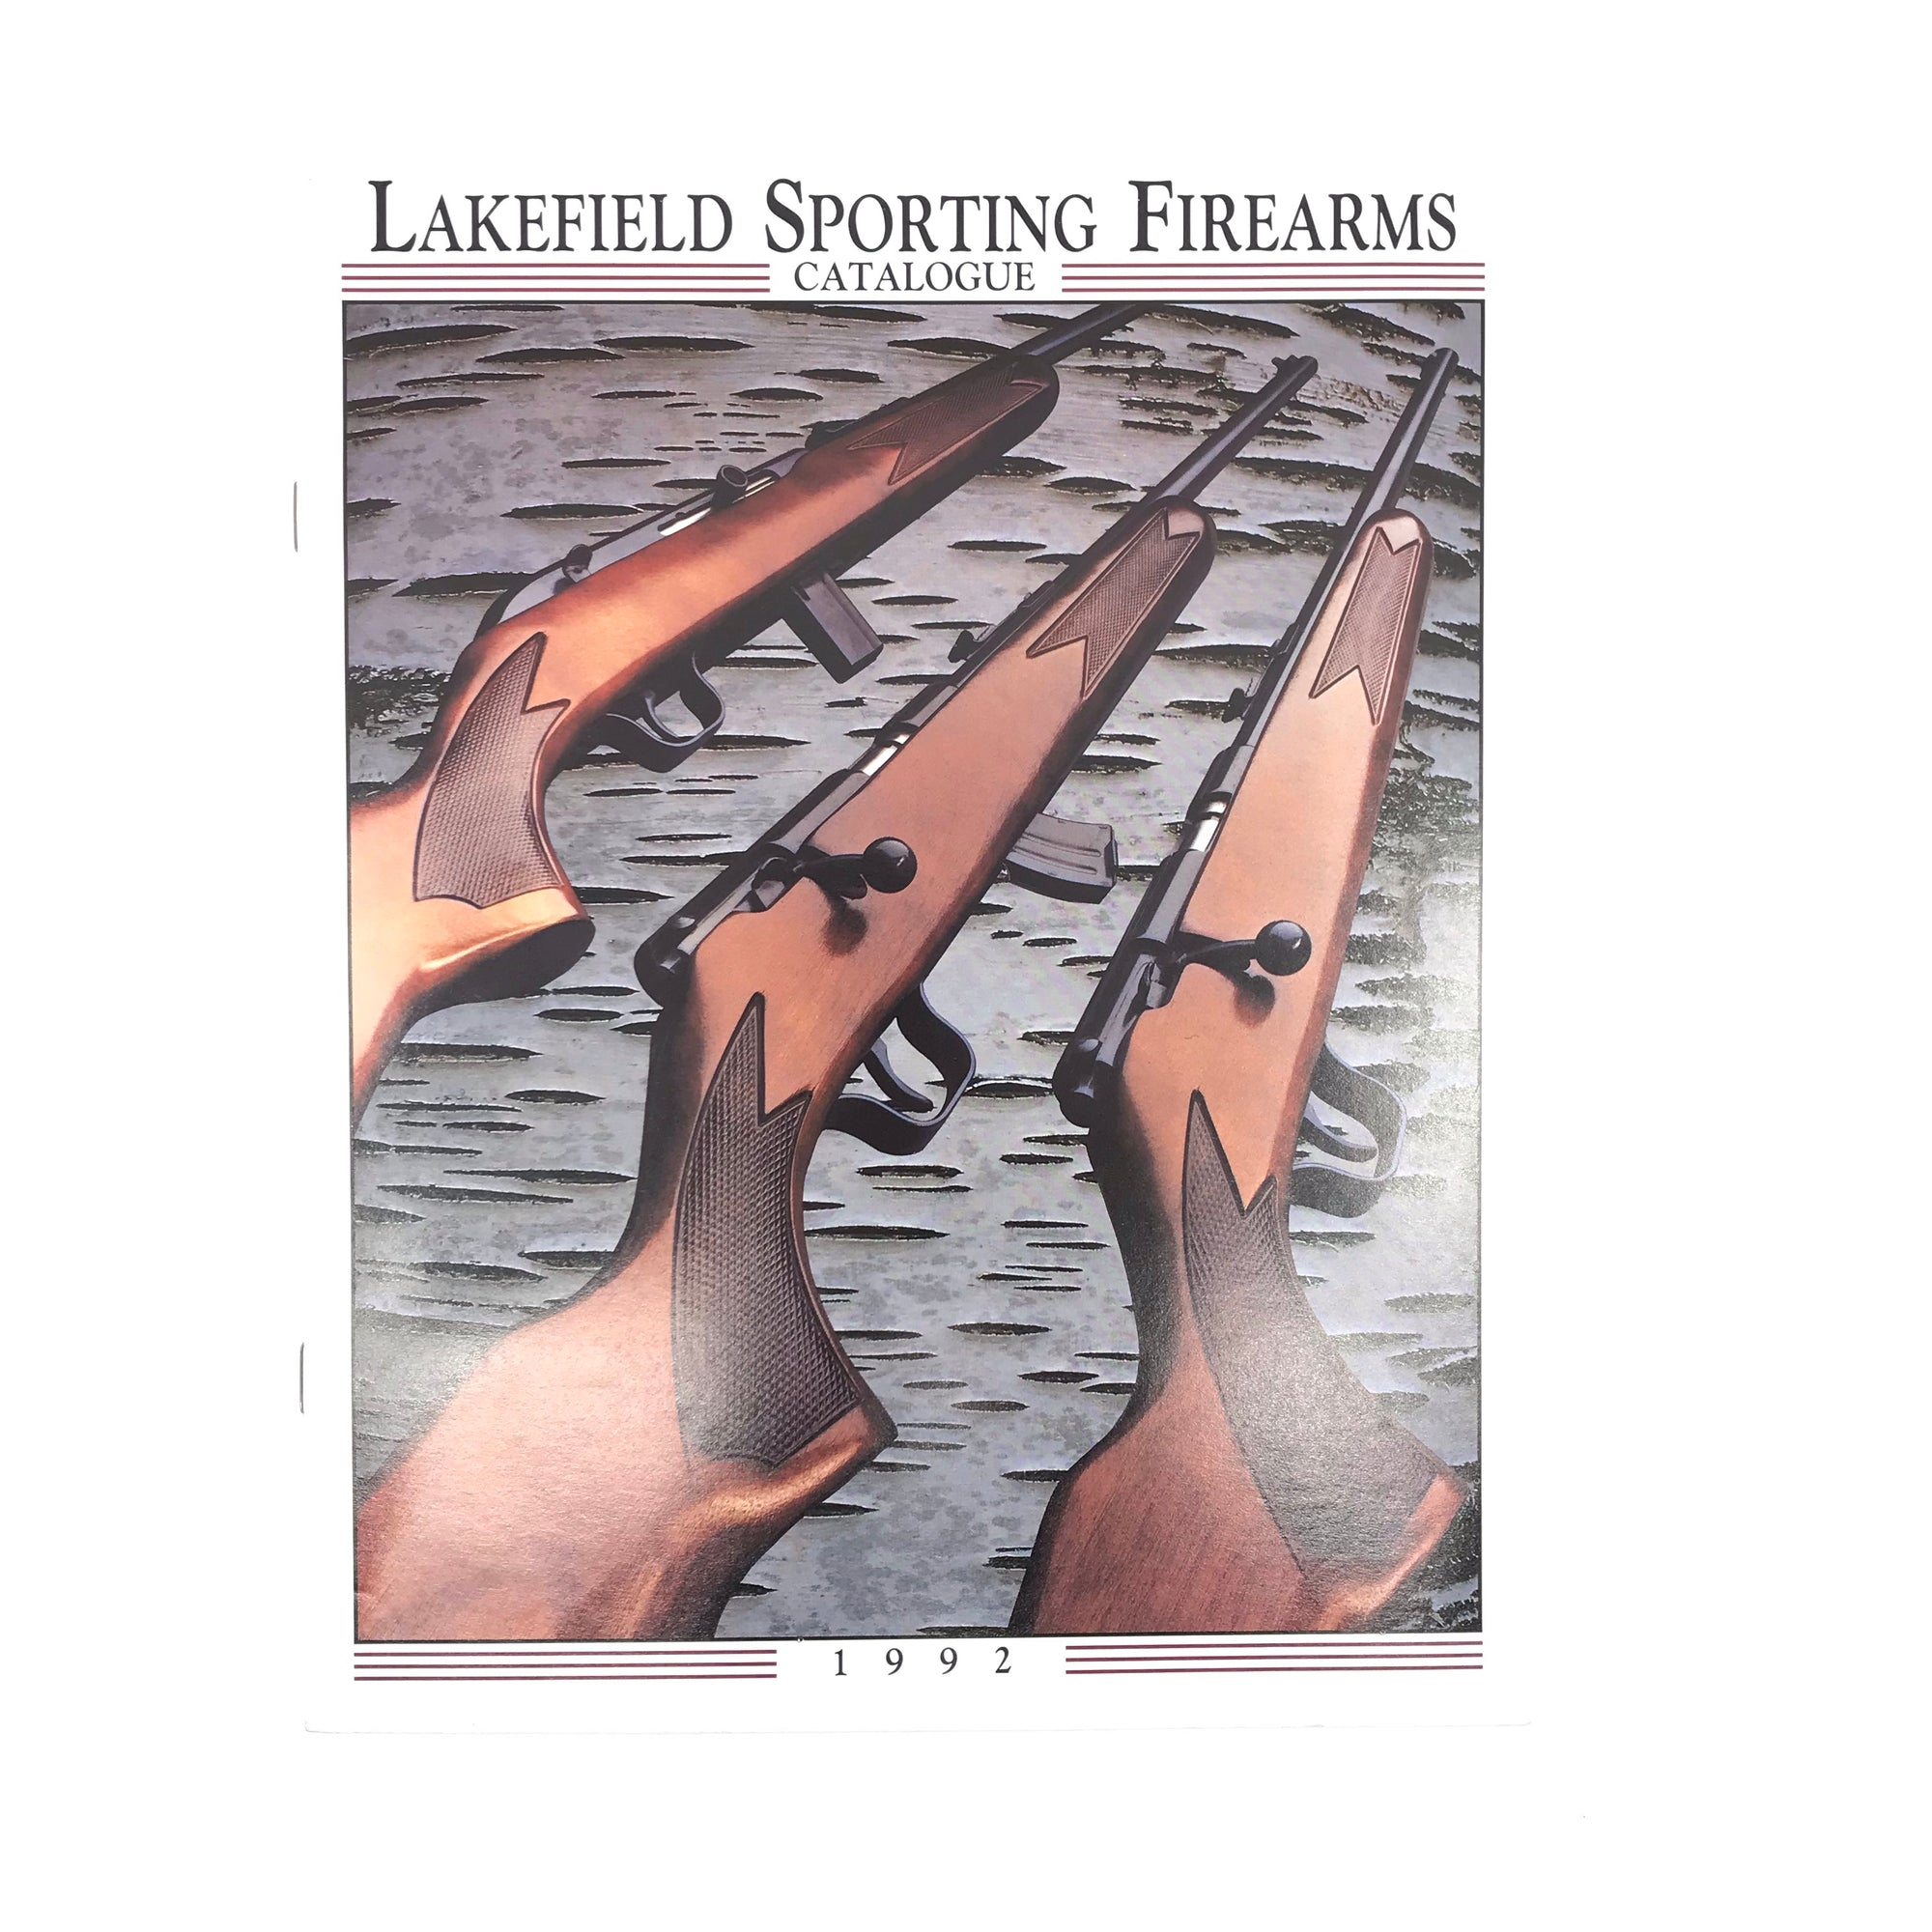 Lakefield Sporting Firearms Catalogue 1992